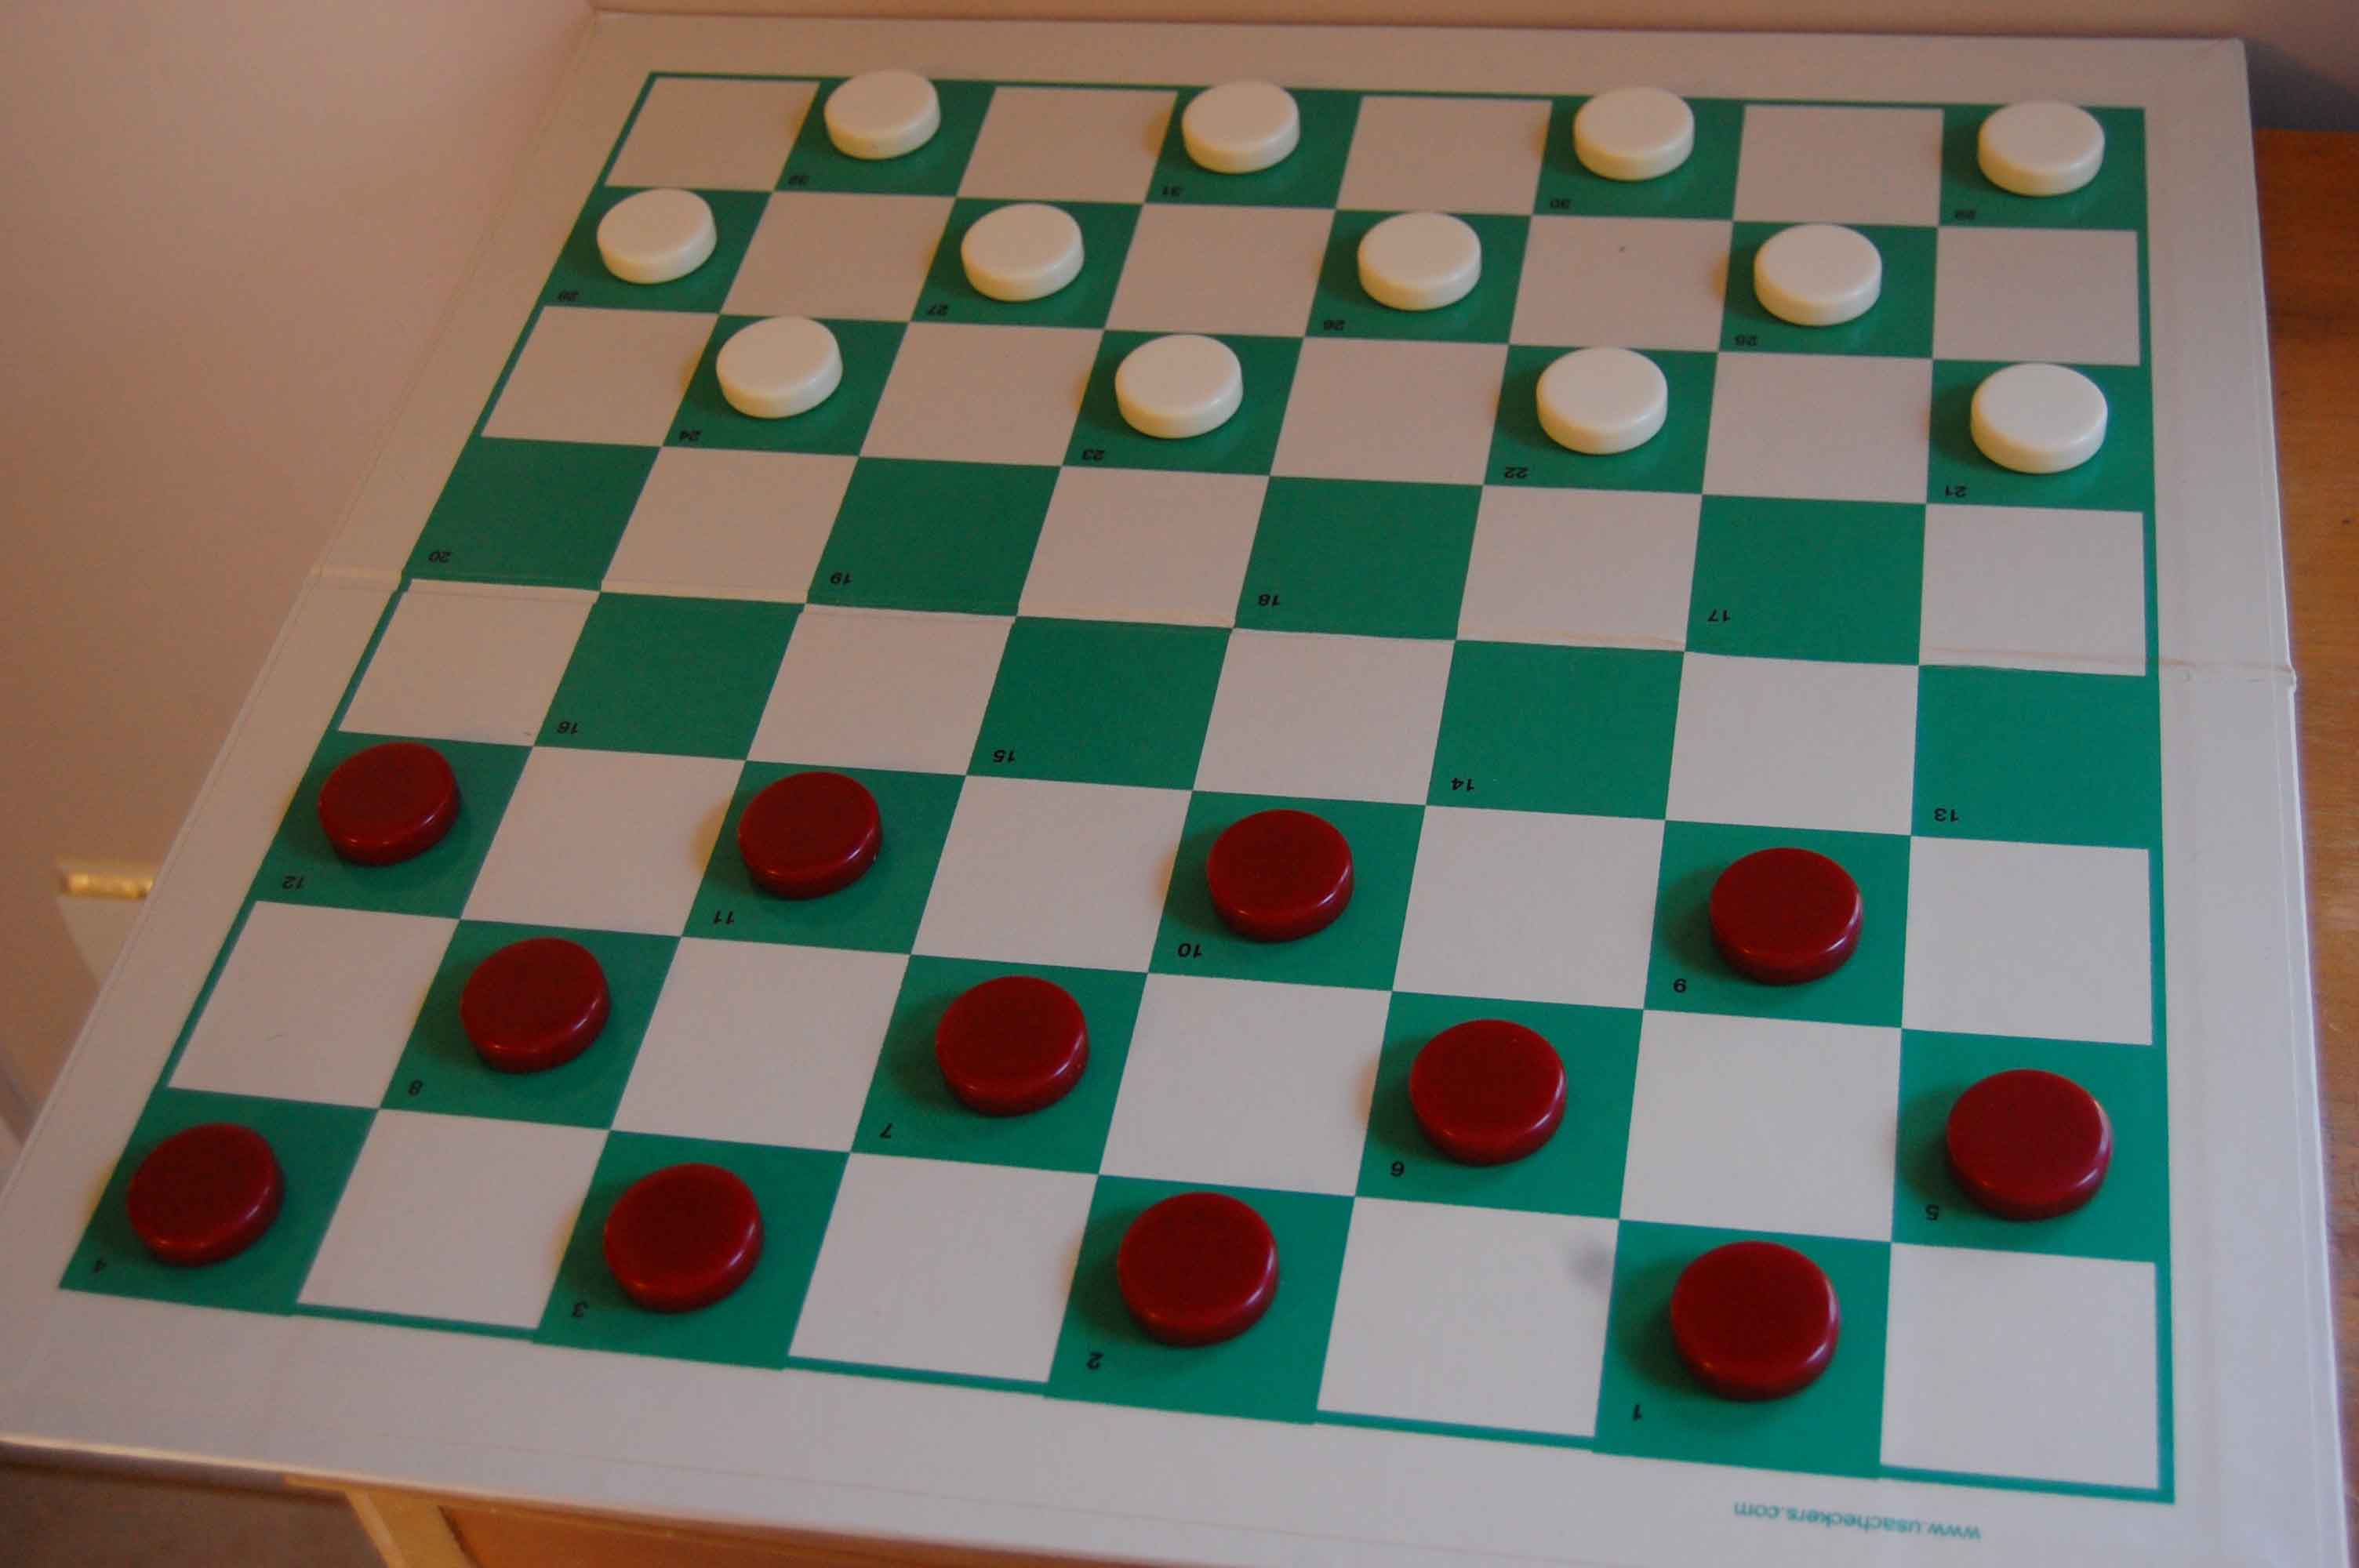 Tada! The 20-Year Crusade to Solve Checkers | USgamer